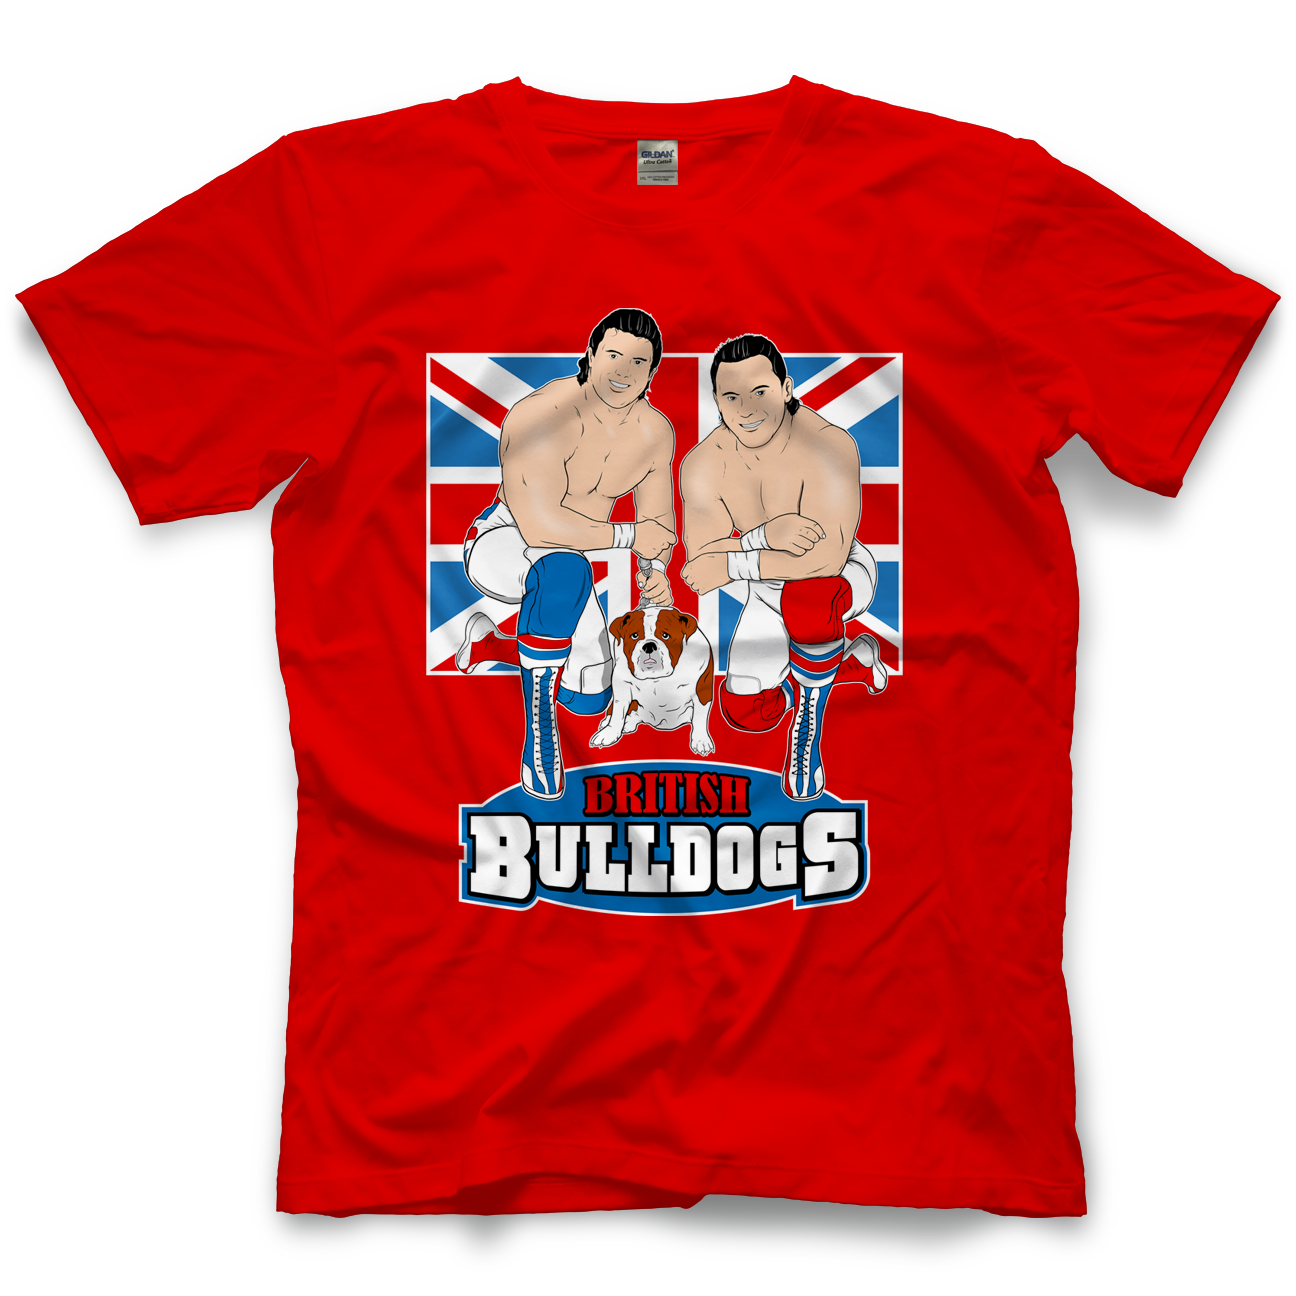 British Bulldogs T-shirt